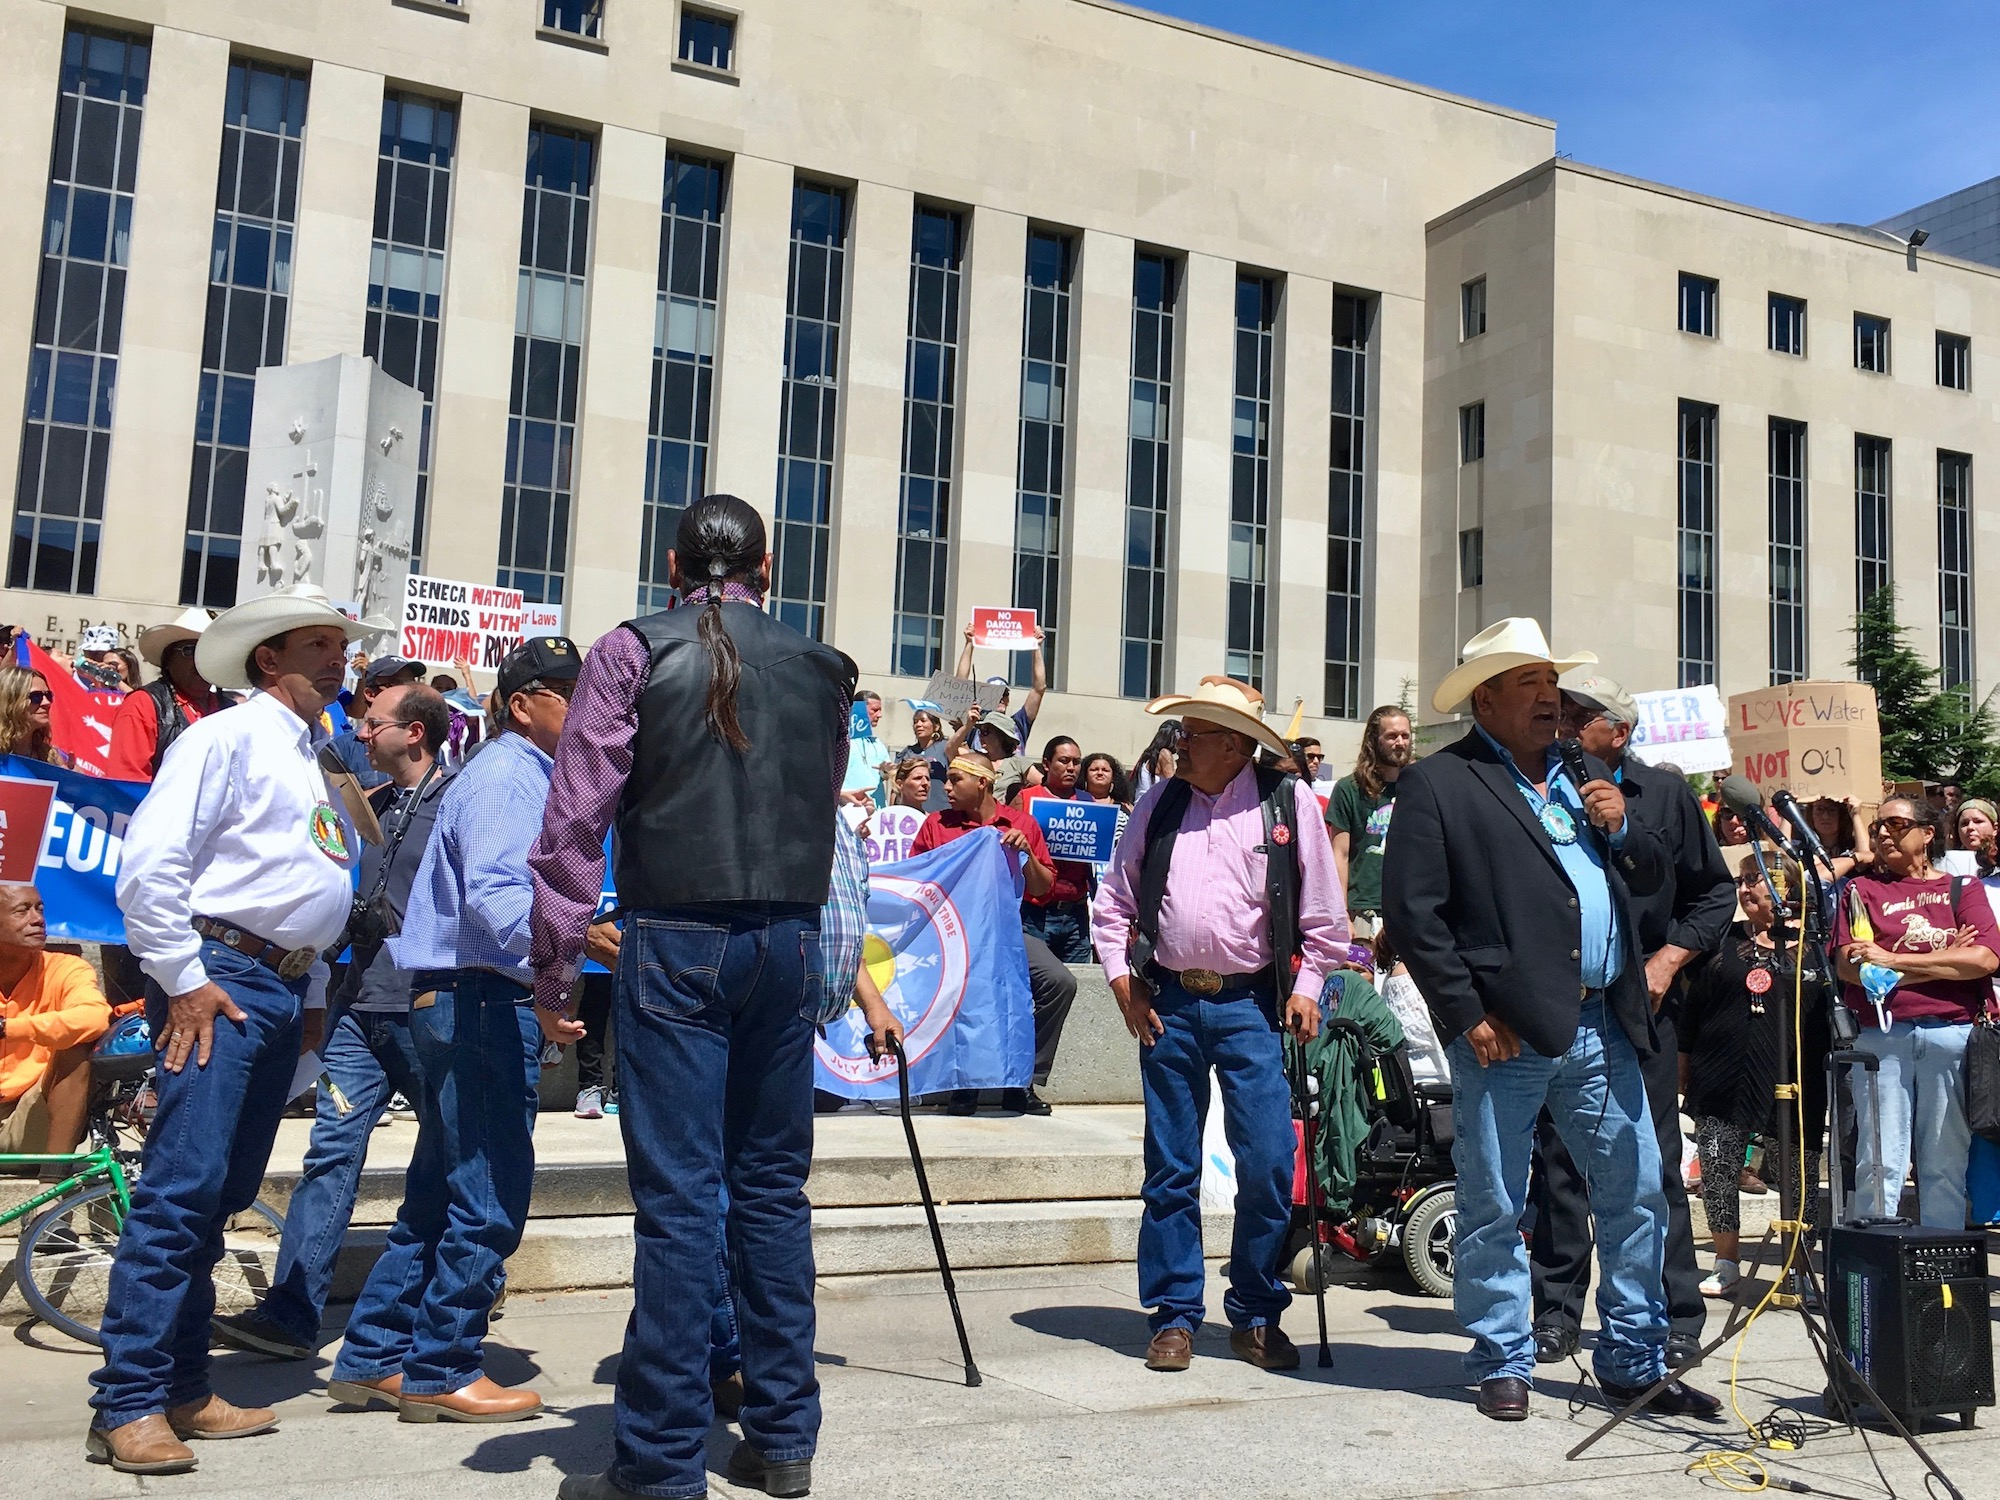 Cheyenne River Sioux Tribe continues to battle Dakota Access Pipeline in court